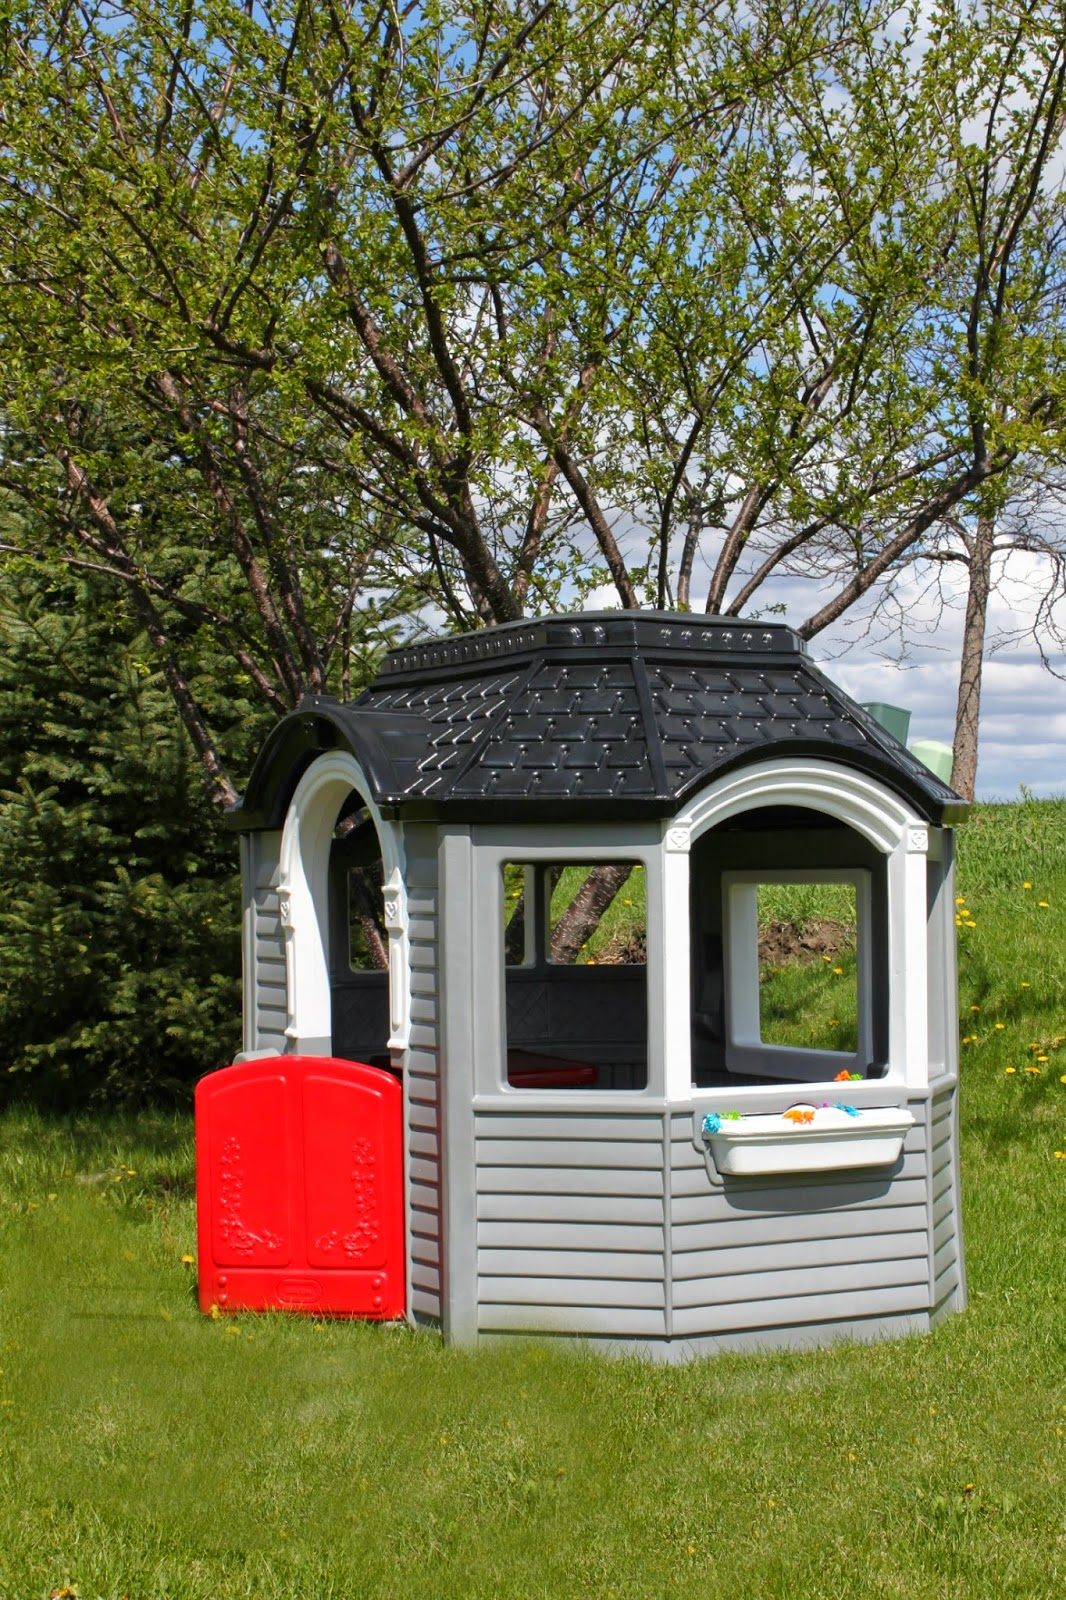 Wonderful Little Tikes Playhouse Made Of Plastic With Black Roof And Red Door Plus Gray Siding For Playground Decor Ideas